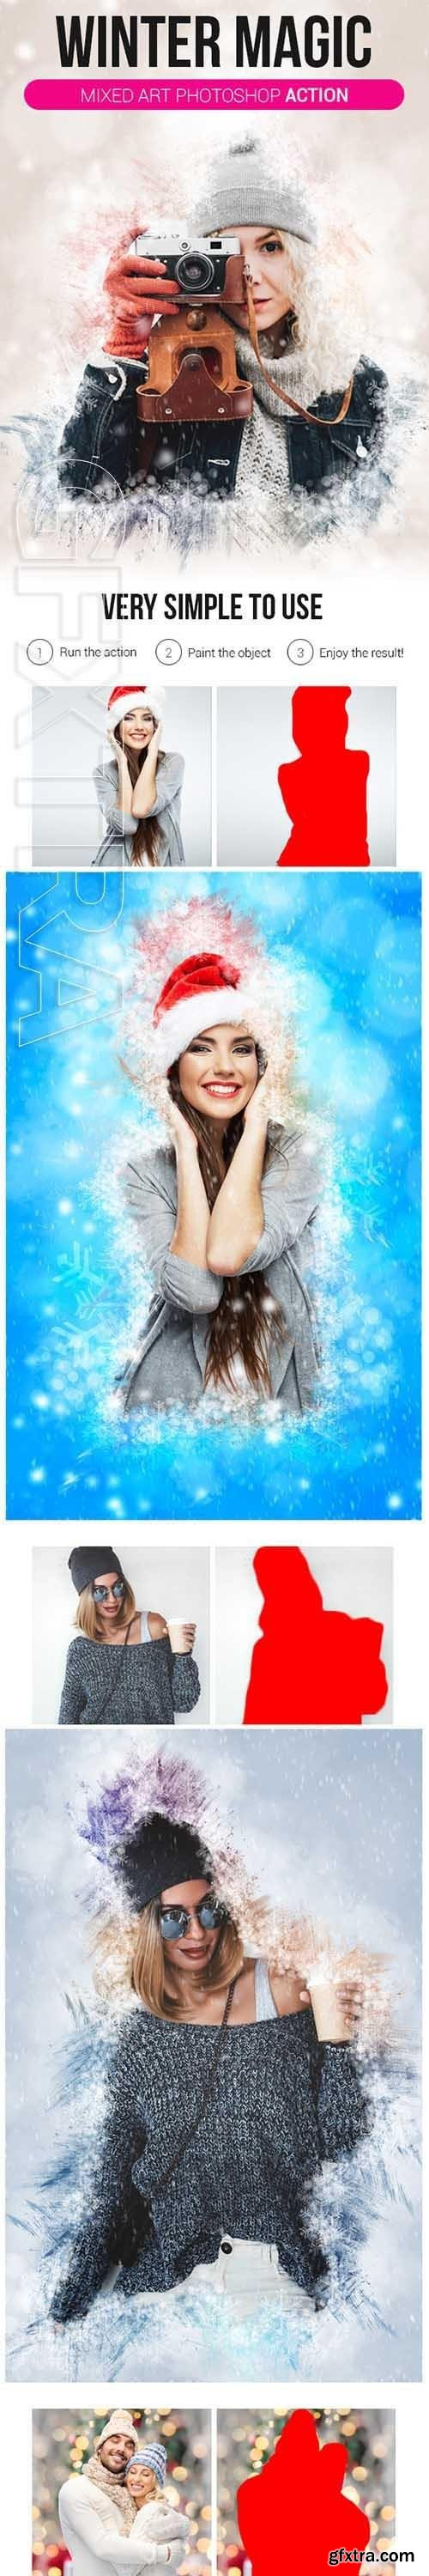 GraphicRiver - Winter Magic Mixed Art Photoshop Action 21156130